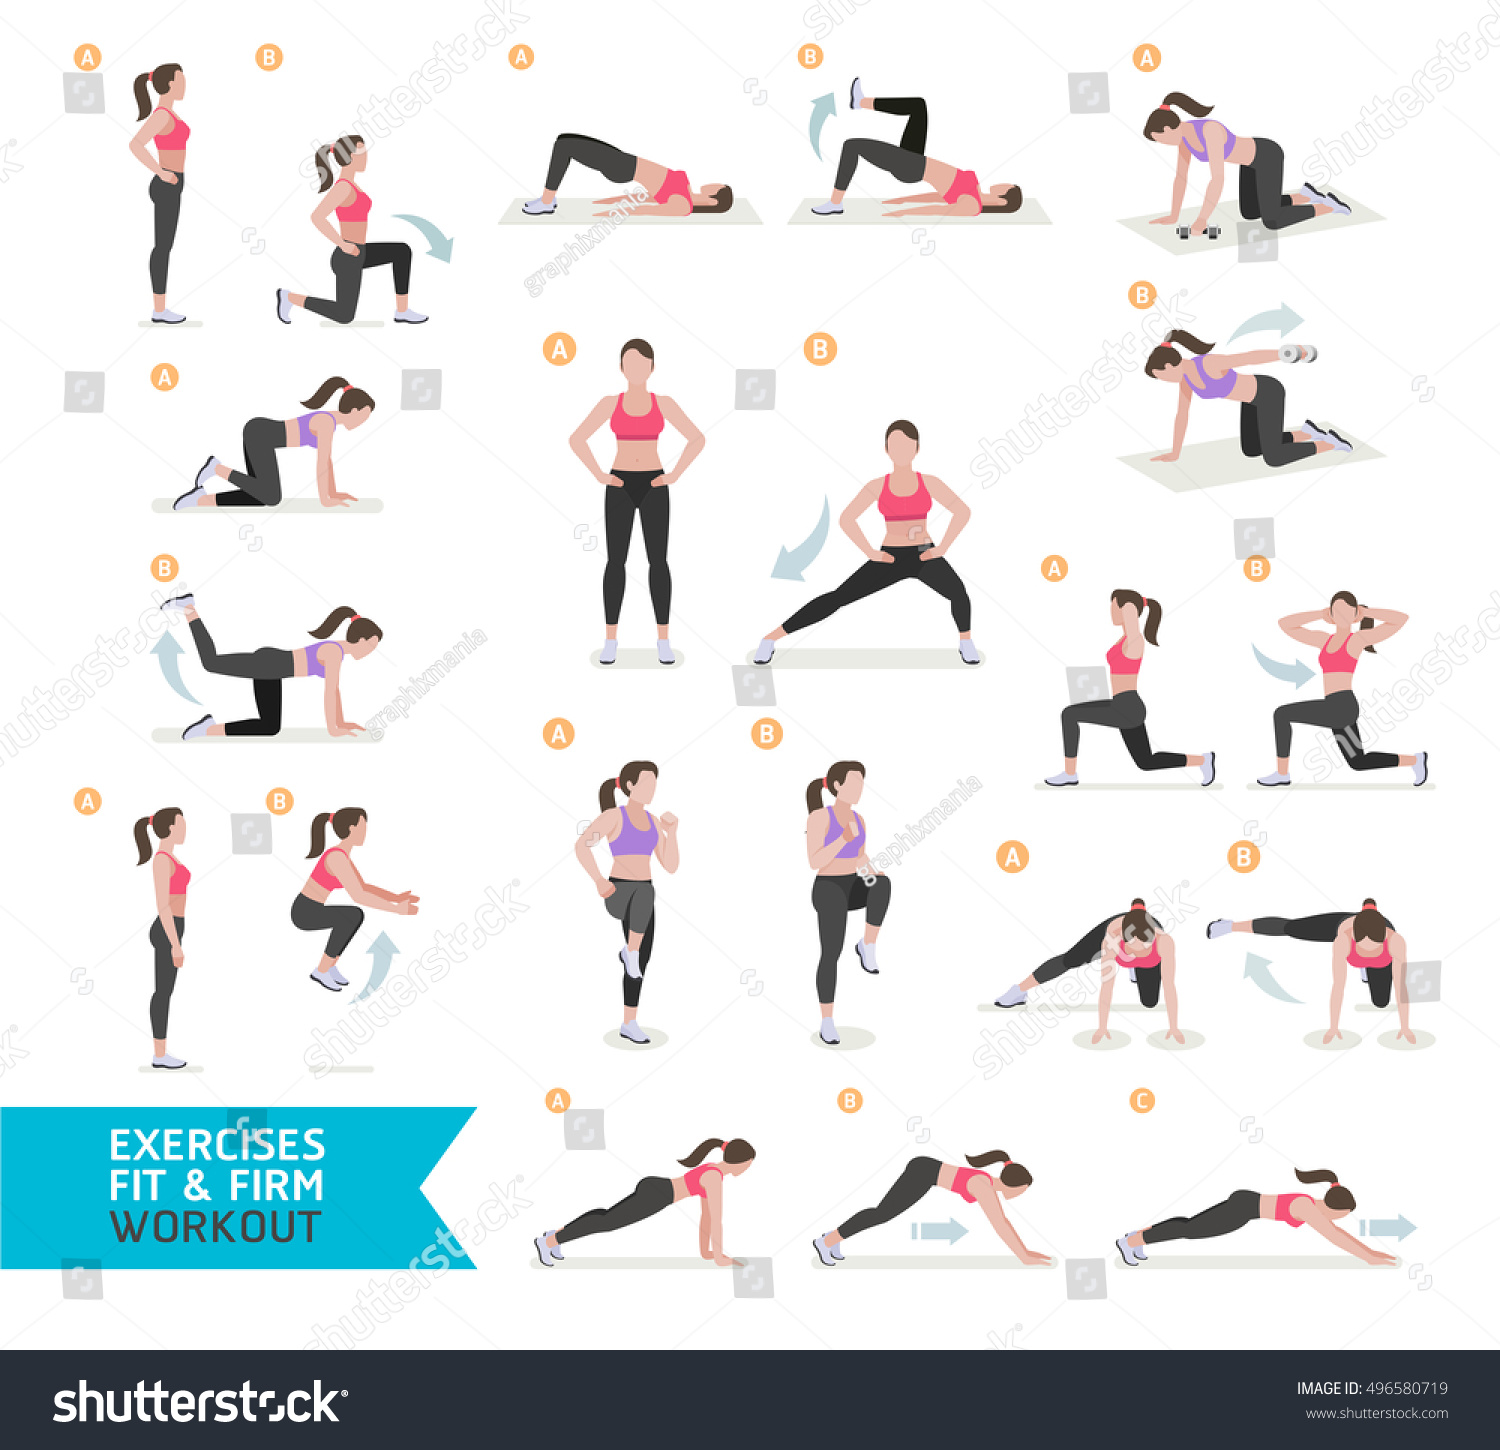 stock-vector-woman-workout-fitness-aerobic-and-exercises-vector-illustration-496580719.jpg